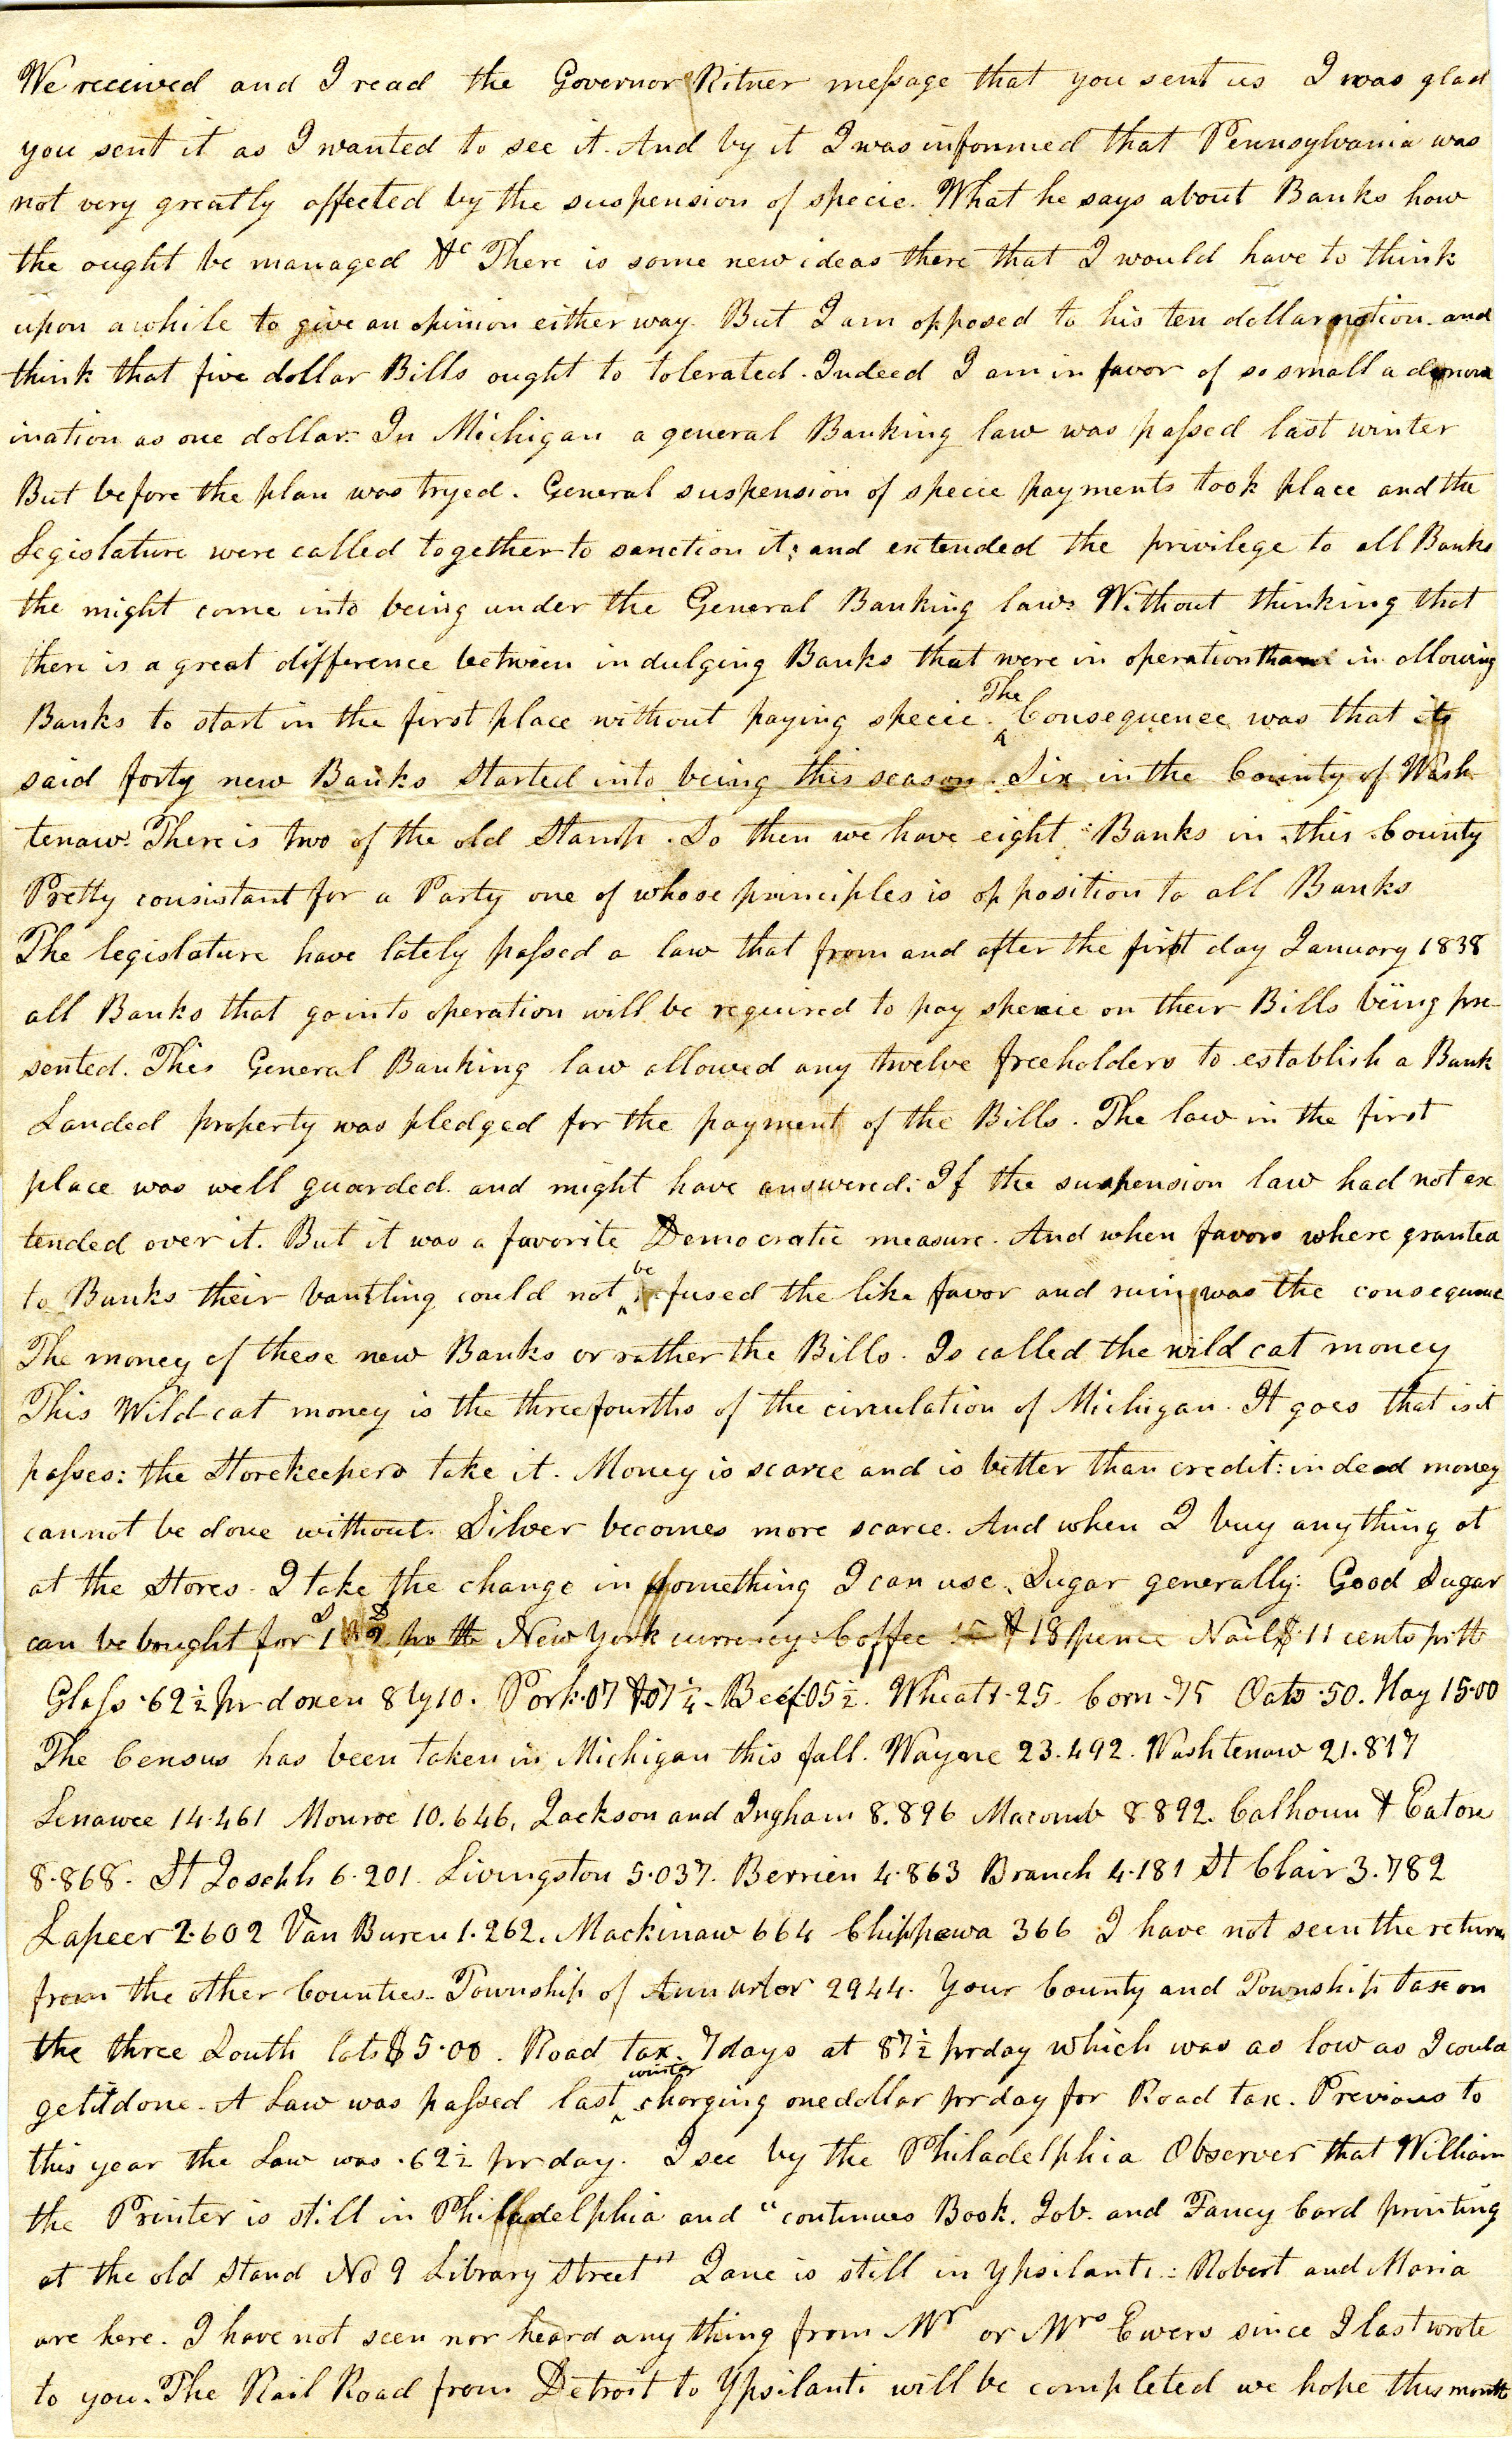 Letter From John Geddes to William Geddes, January 5, 1838 image